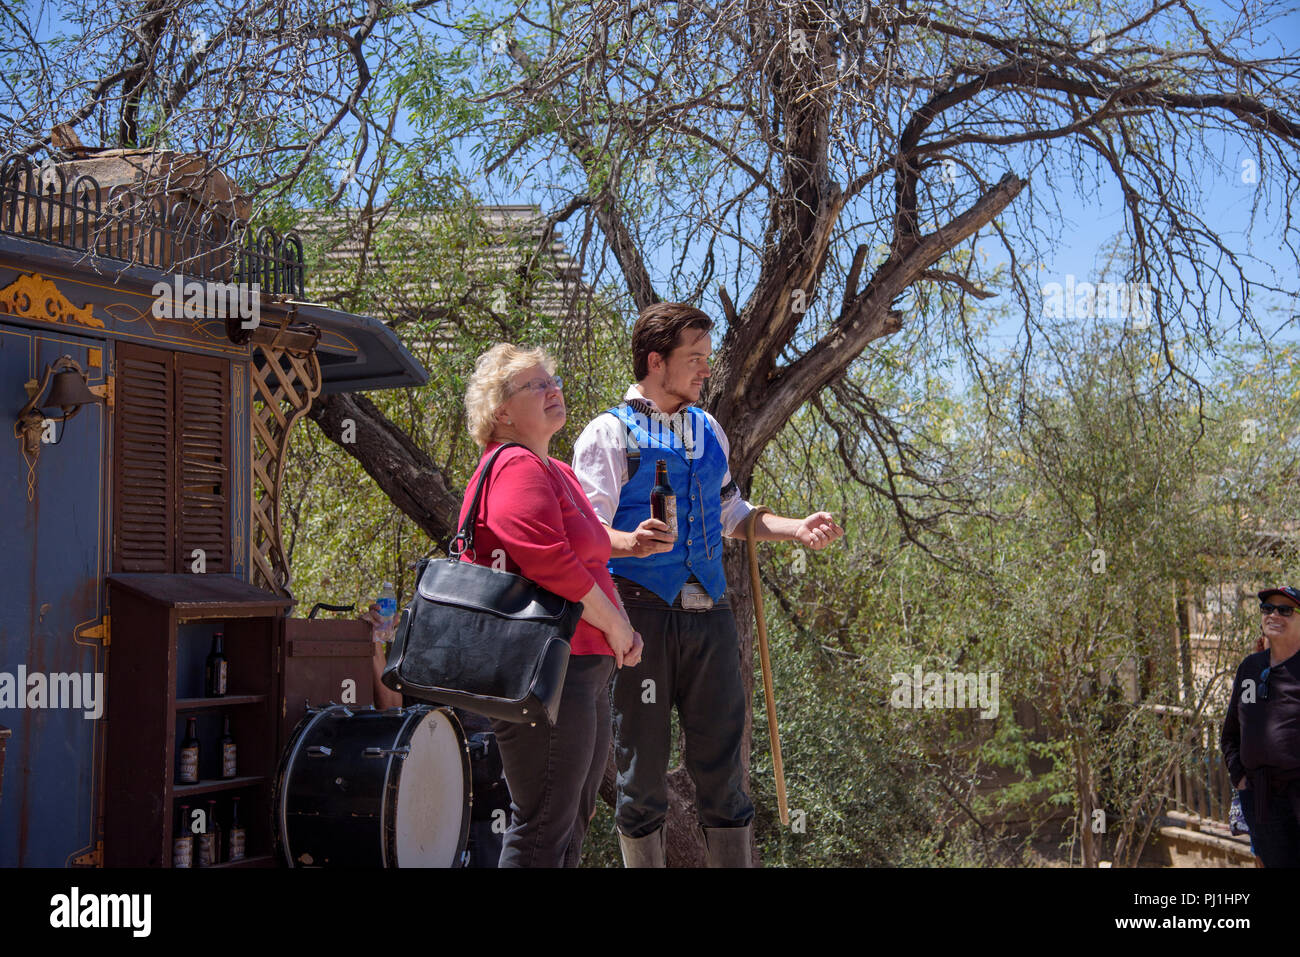 Tourists volunteers with actor in old west medicine show. Actor is holding a bottle of elixir. - Stock Image